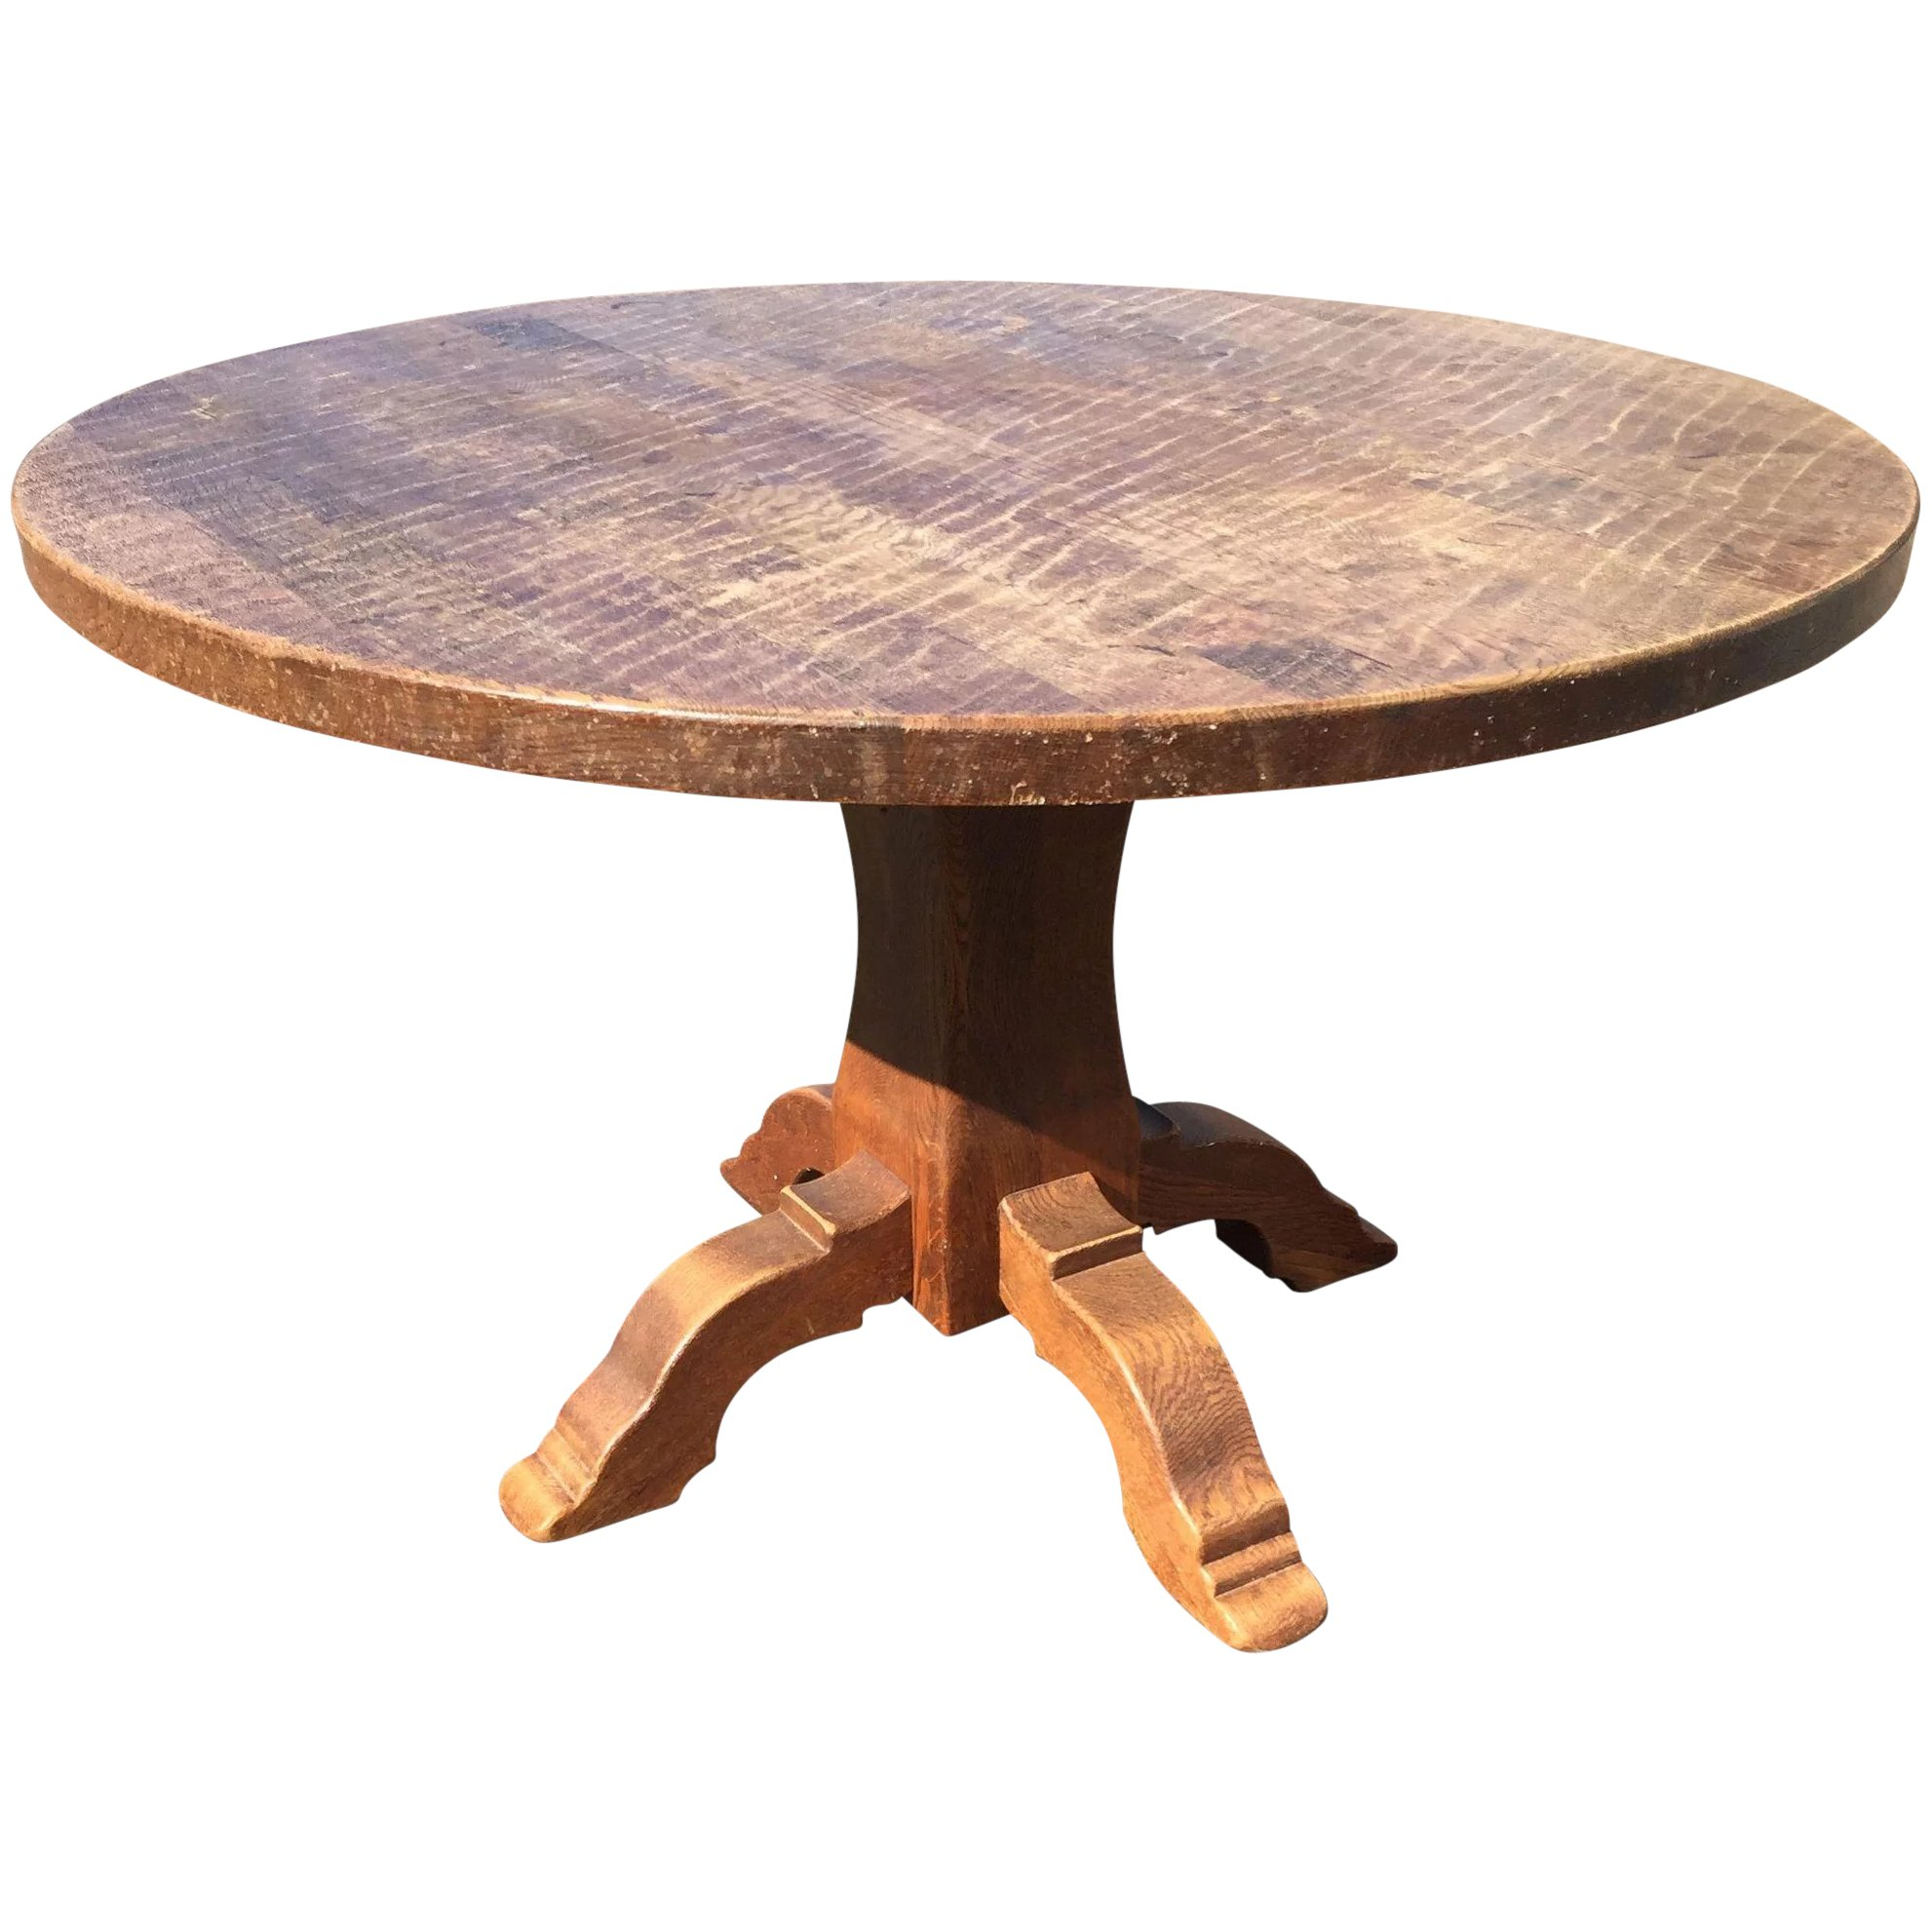 Vintage French Rustic Oak Wood Round Table Europe